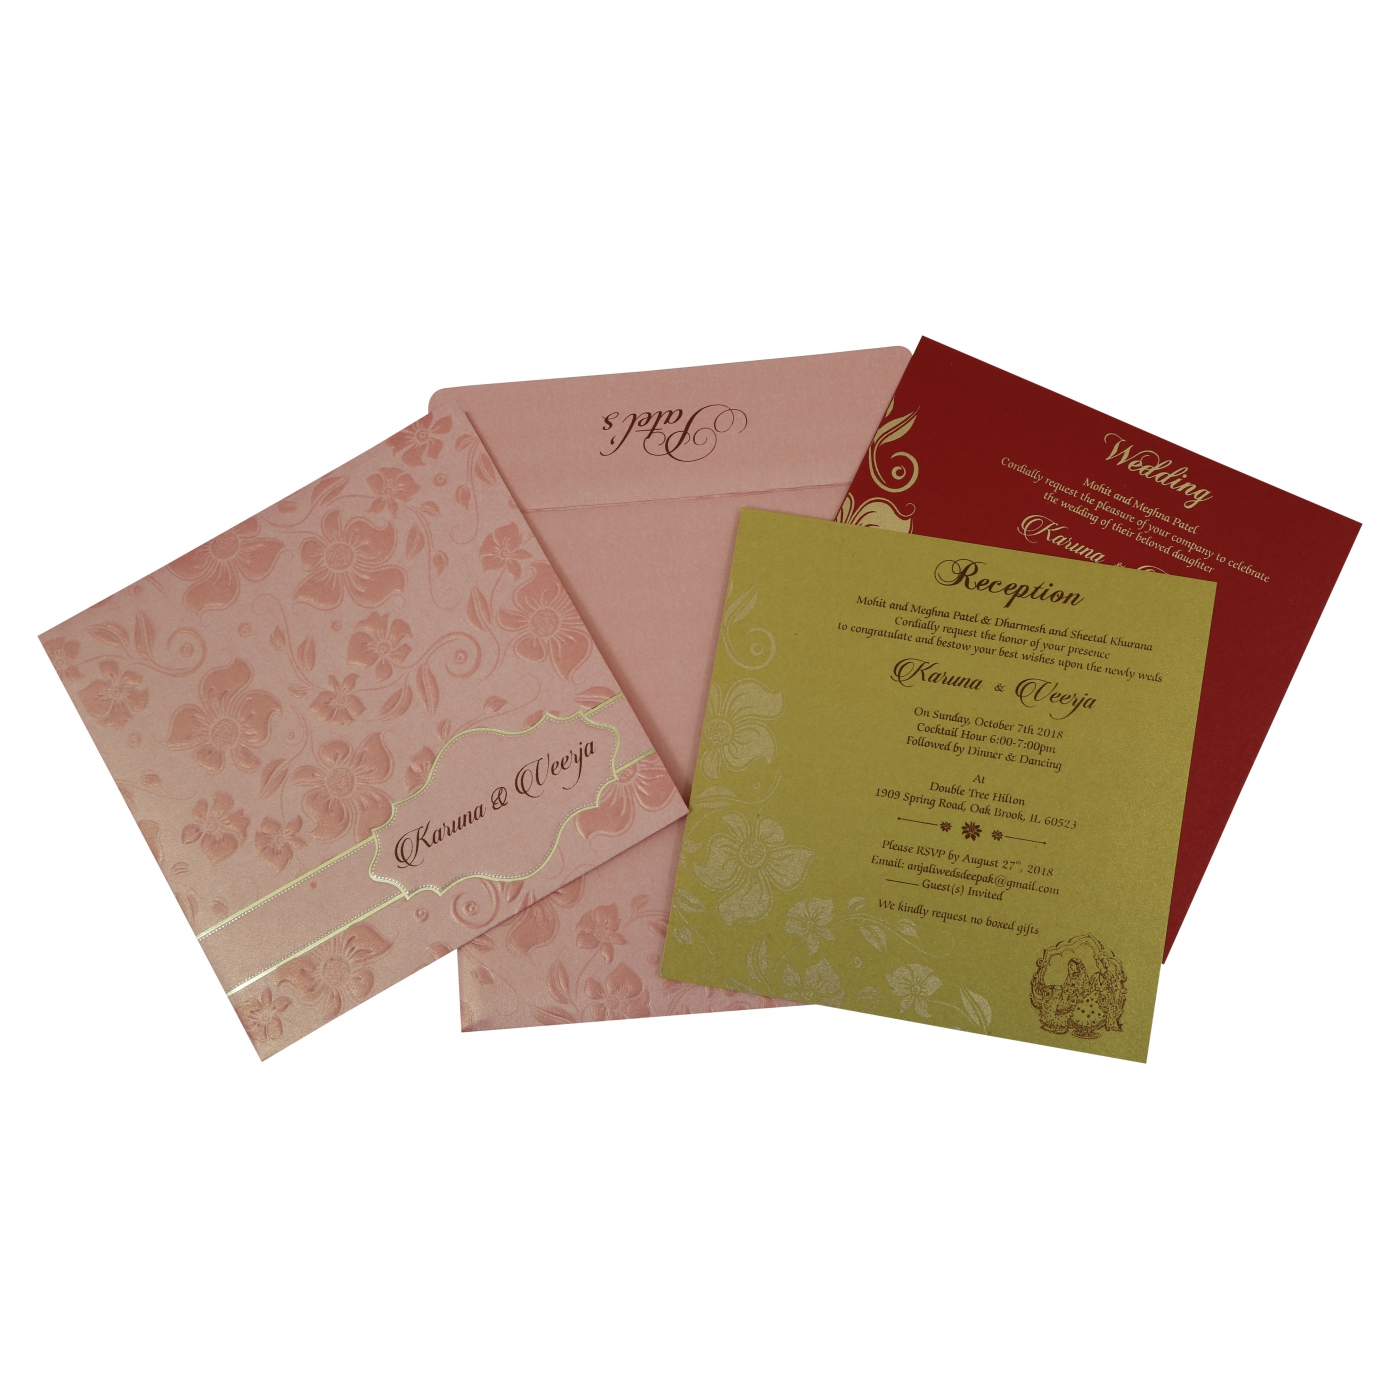 BABY PINK SHIMMERY FLORAL THEMED - FOIL STAMPED WEDDING INVITATION : D-1793 - 123WeddingCards